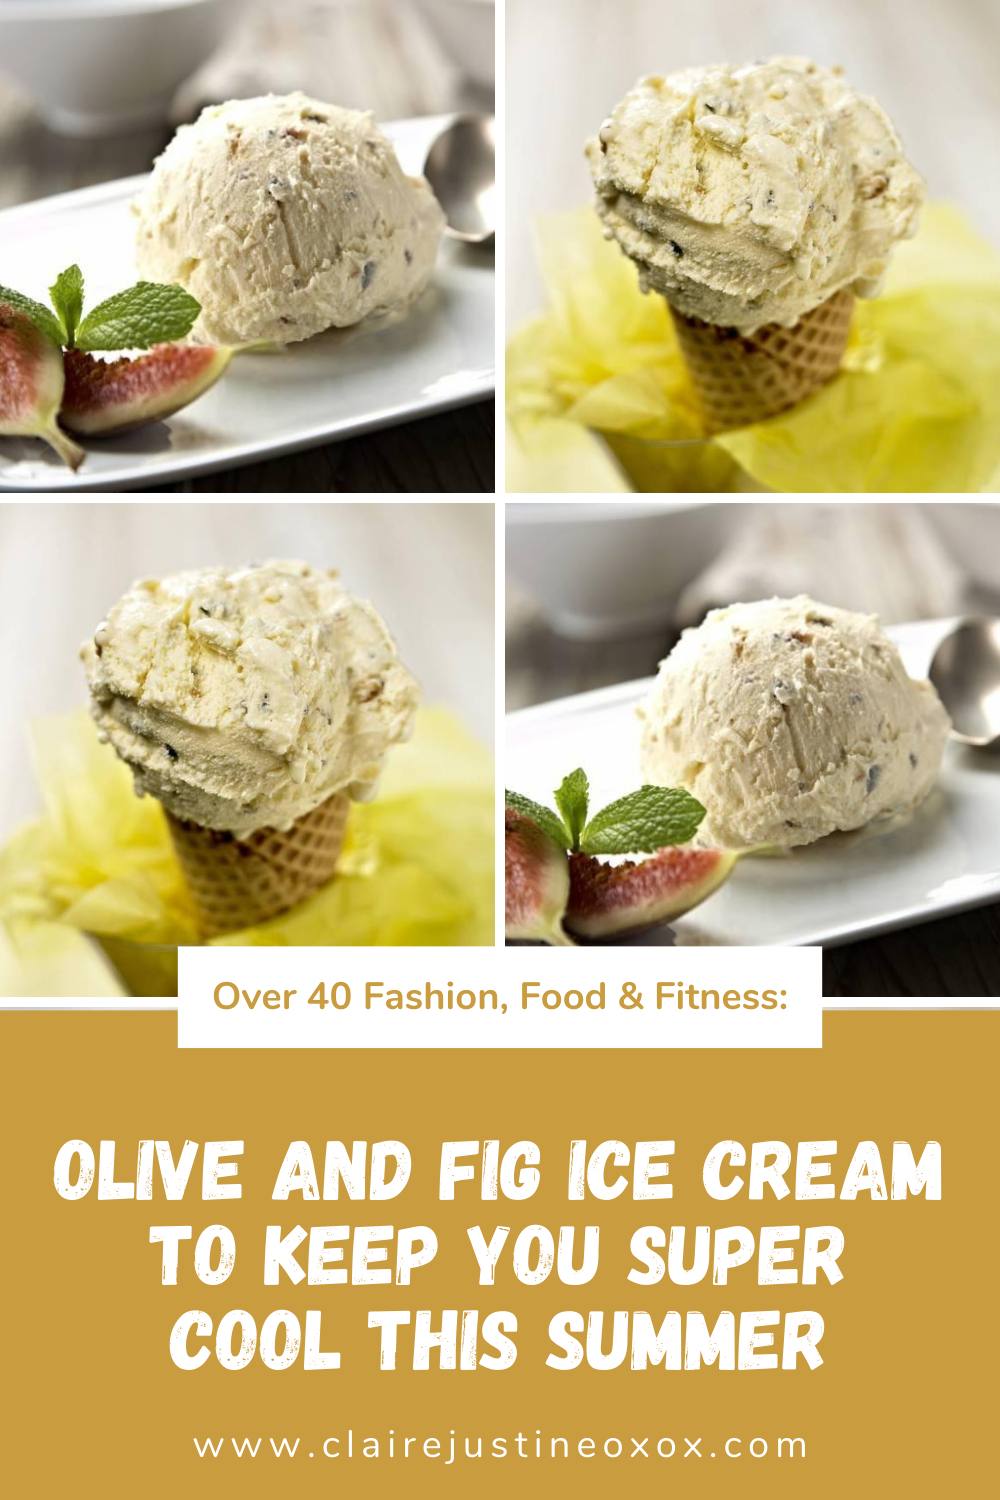 Olive And Fig Ice Cream To Keep You Super Cool This Summer.